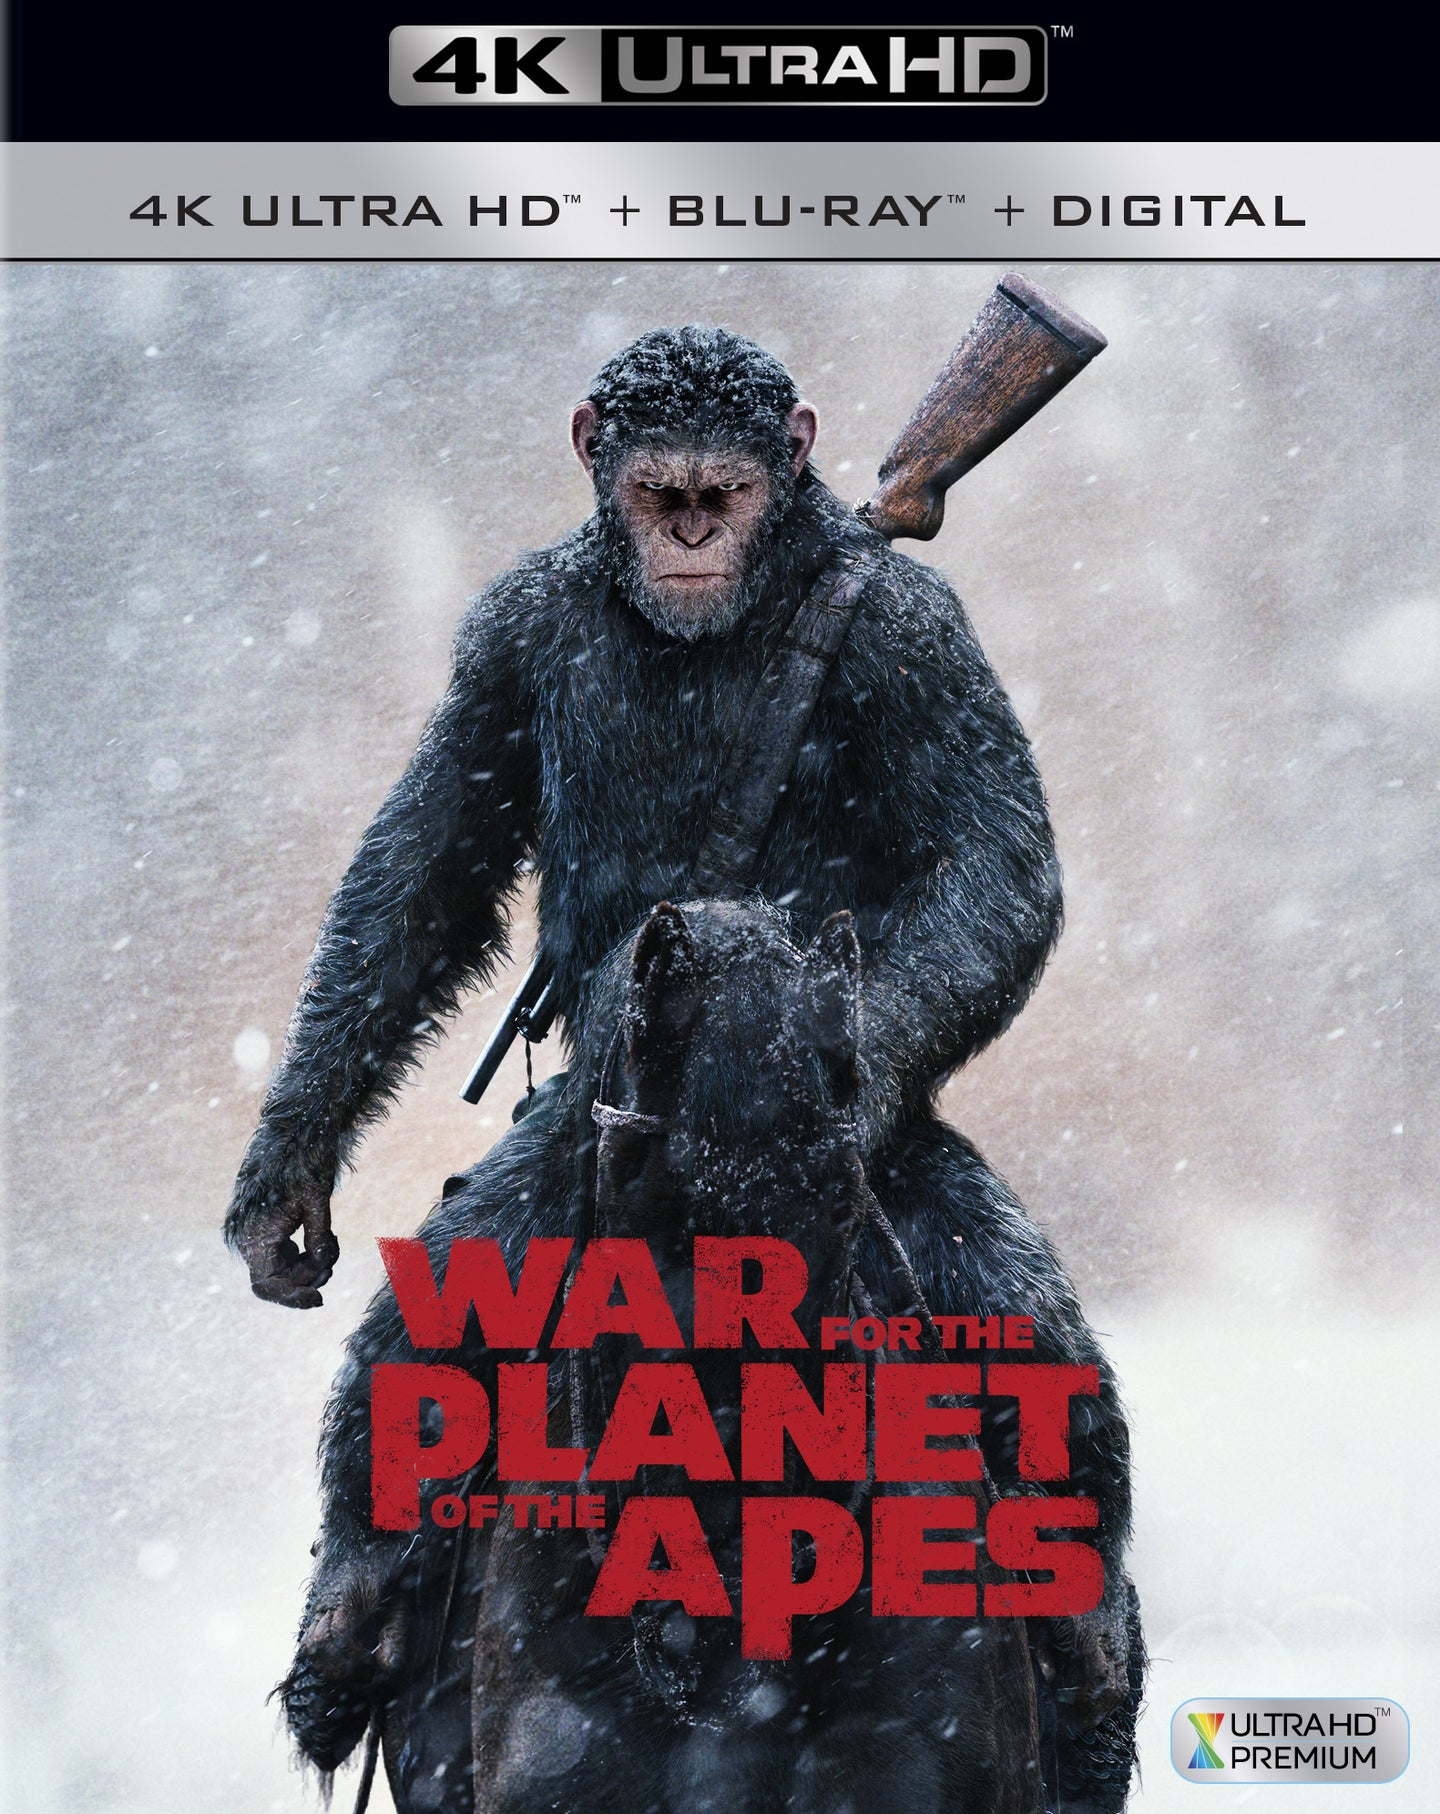 War for the Planet of the Apes (2017) iTunes 4K or Vudu / Movies Anywhere HD code